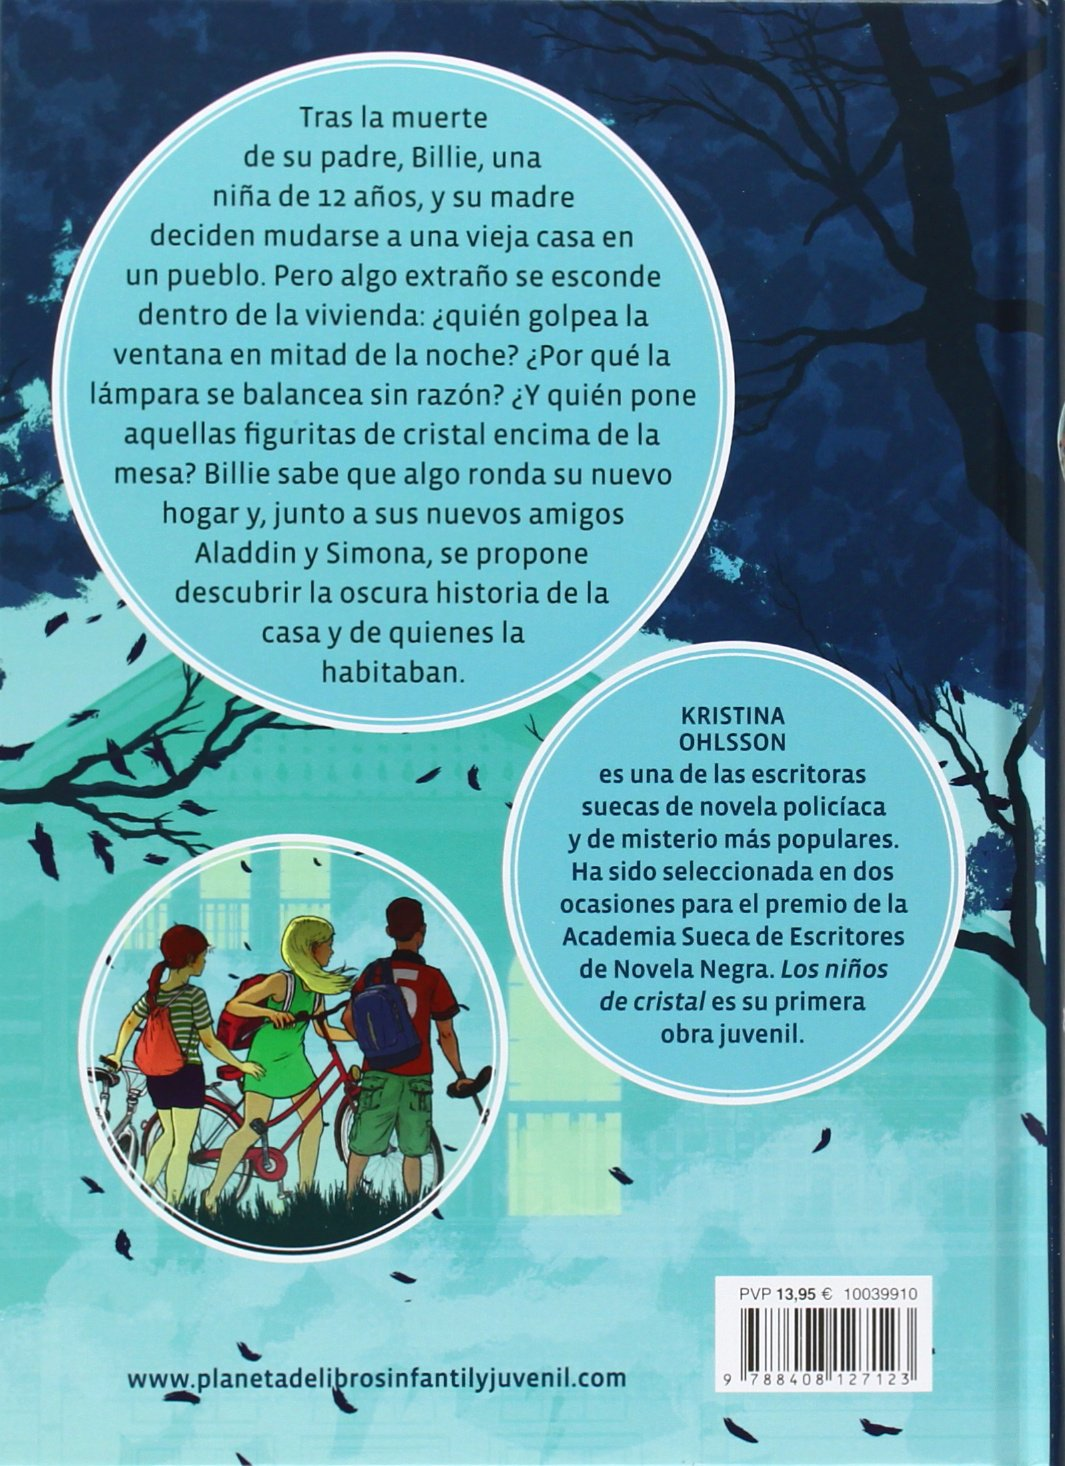 Los niños de cristal (Spanish Edition): Kristina ohlsson, Destino: 9788408127123: Amazon.com: Books